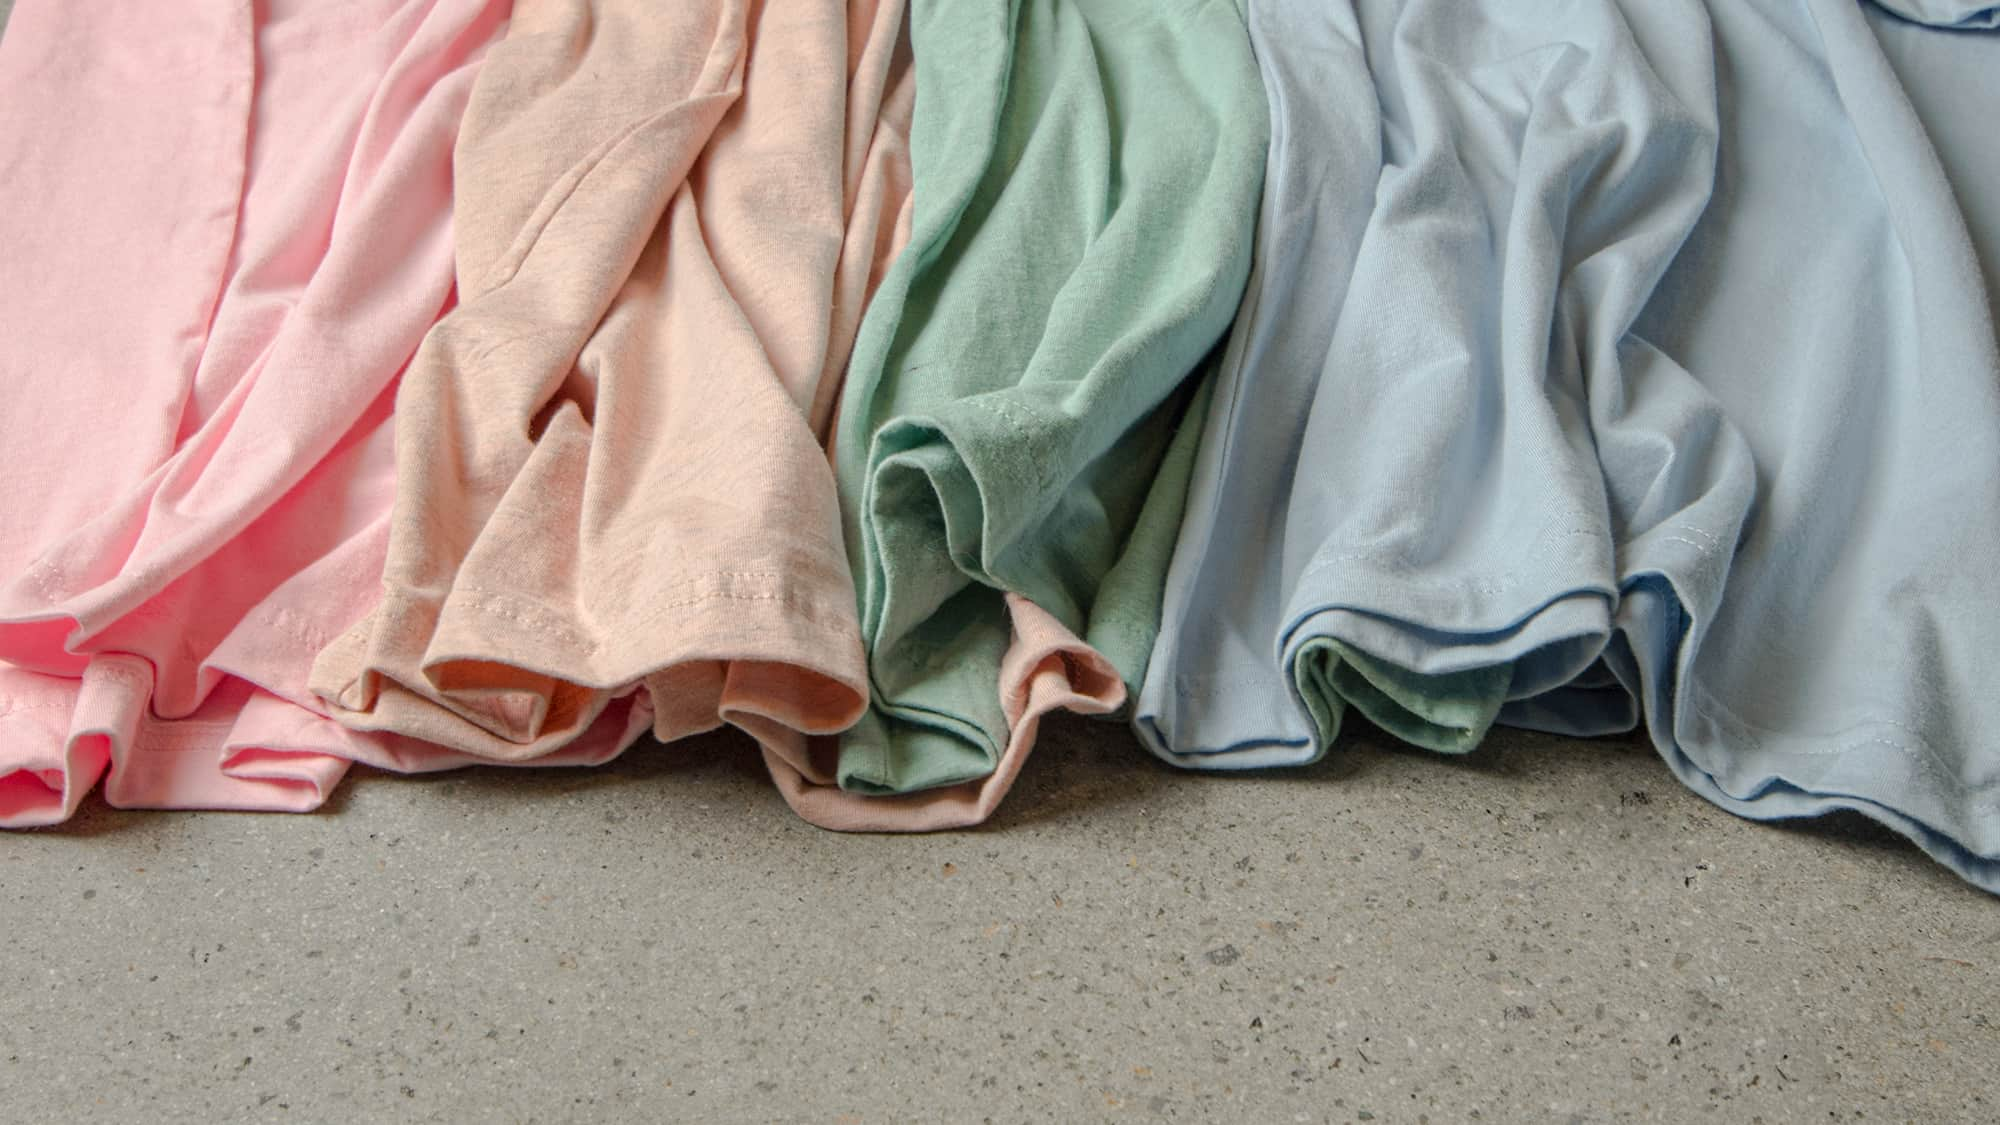 The pastel pallet made with corresponding t-shirt fabrics.